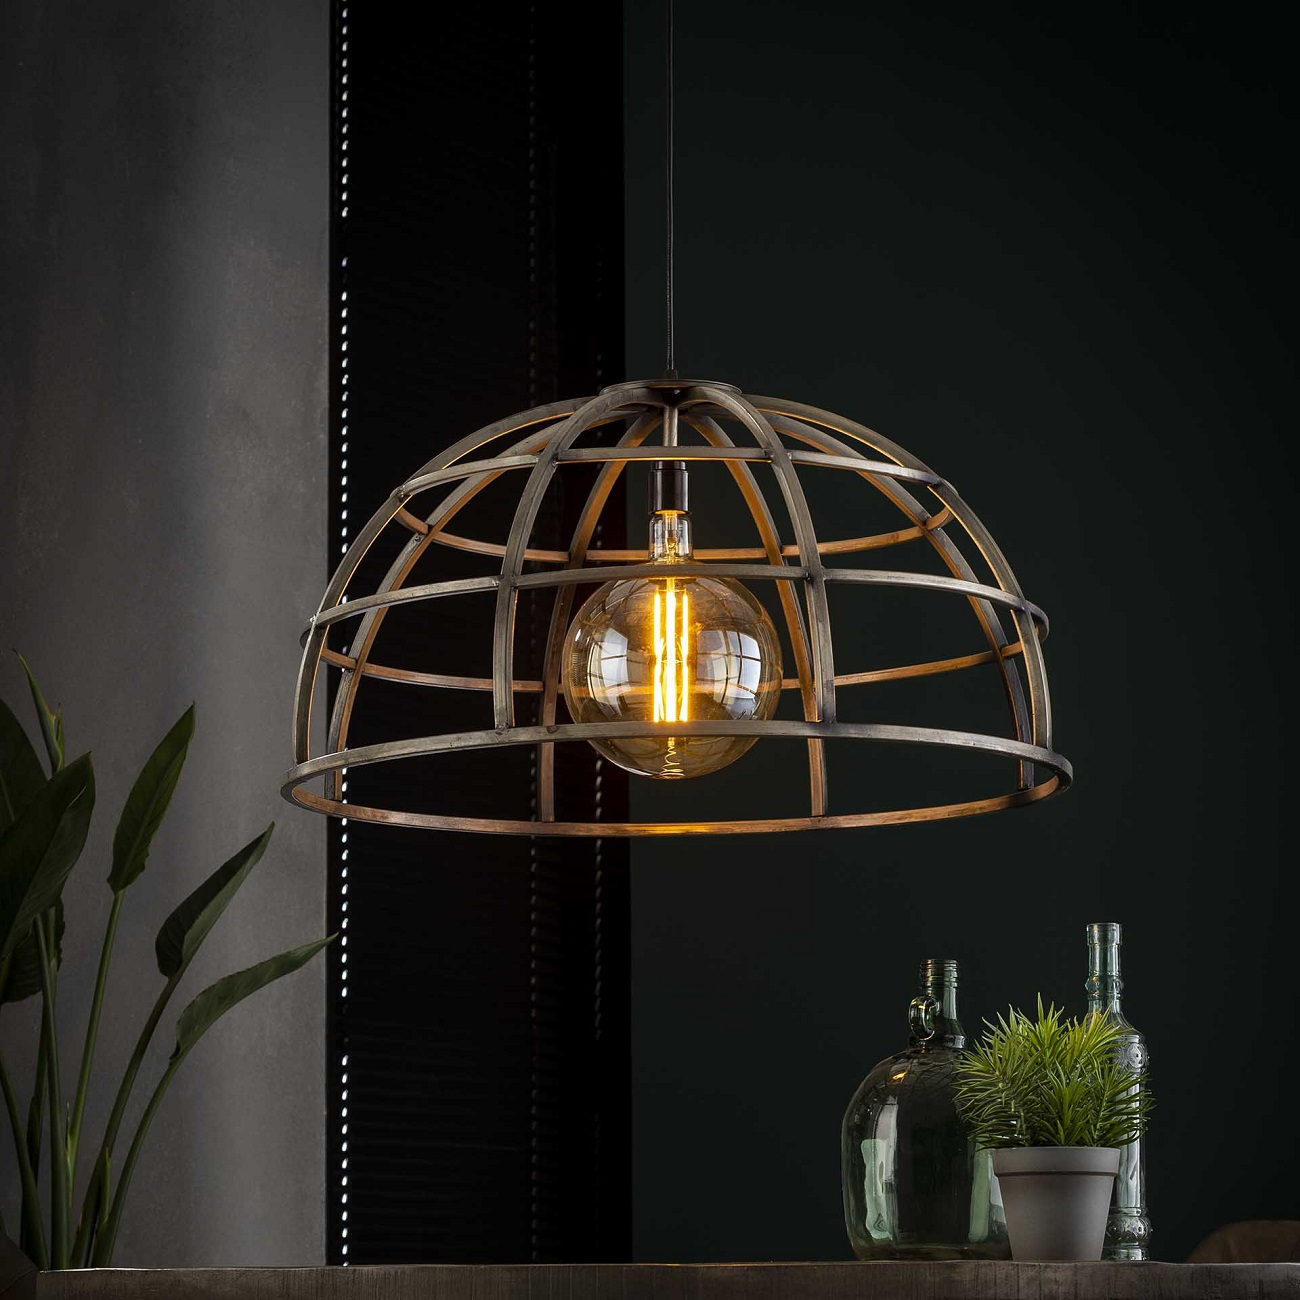 Hanglamp Dome 1xØ70 in Oud zilver